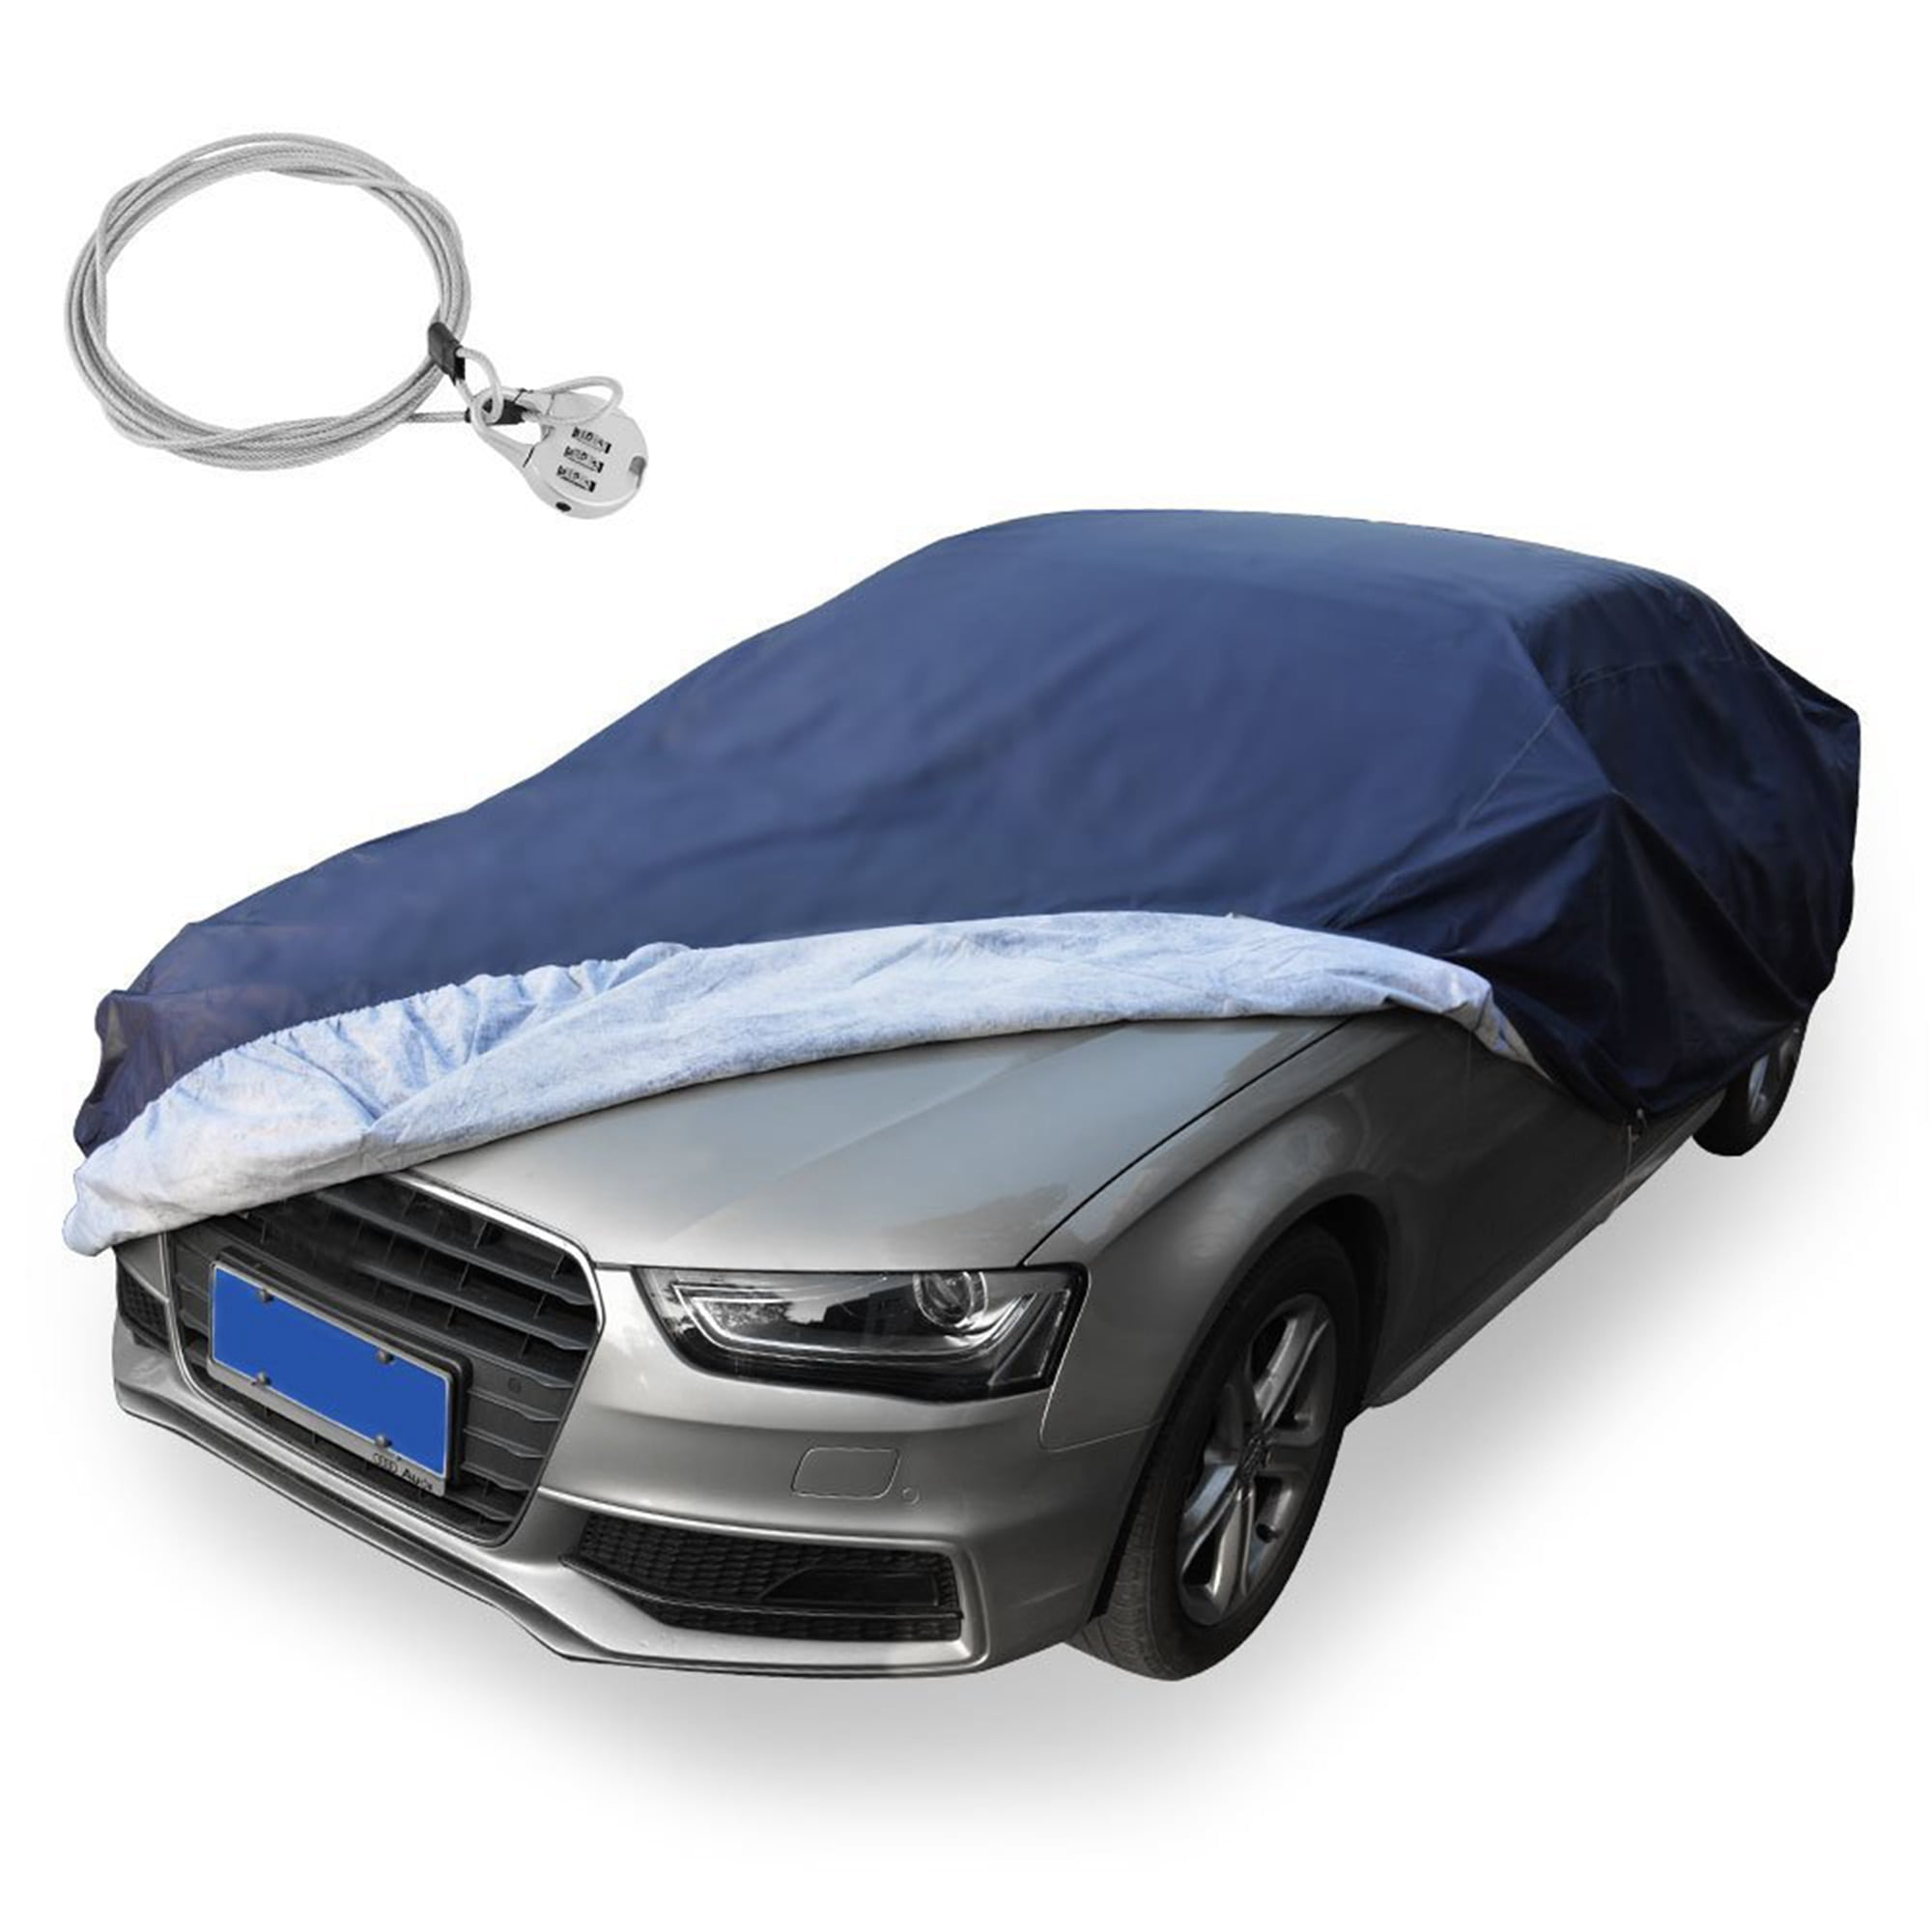 Waterproof Car Cover Breathable UV Protection Dust Rain Snow Wind Outdoor Indoor